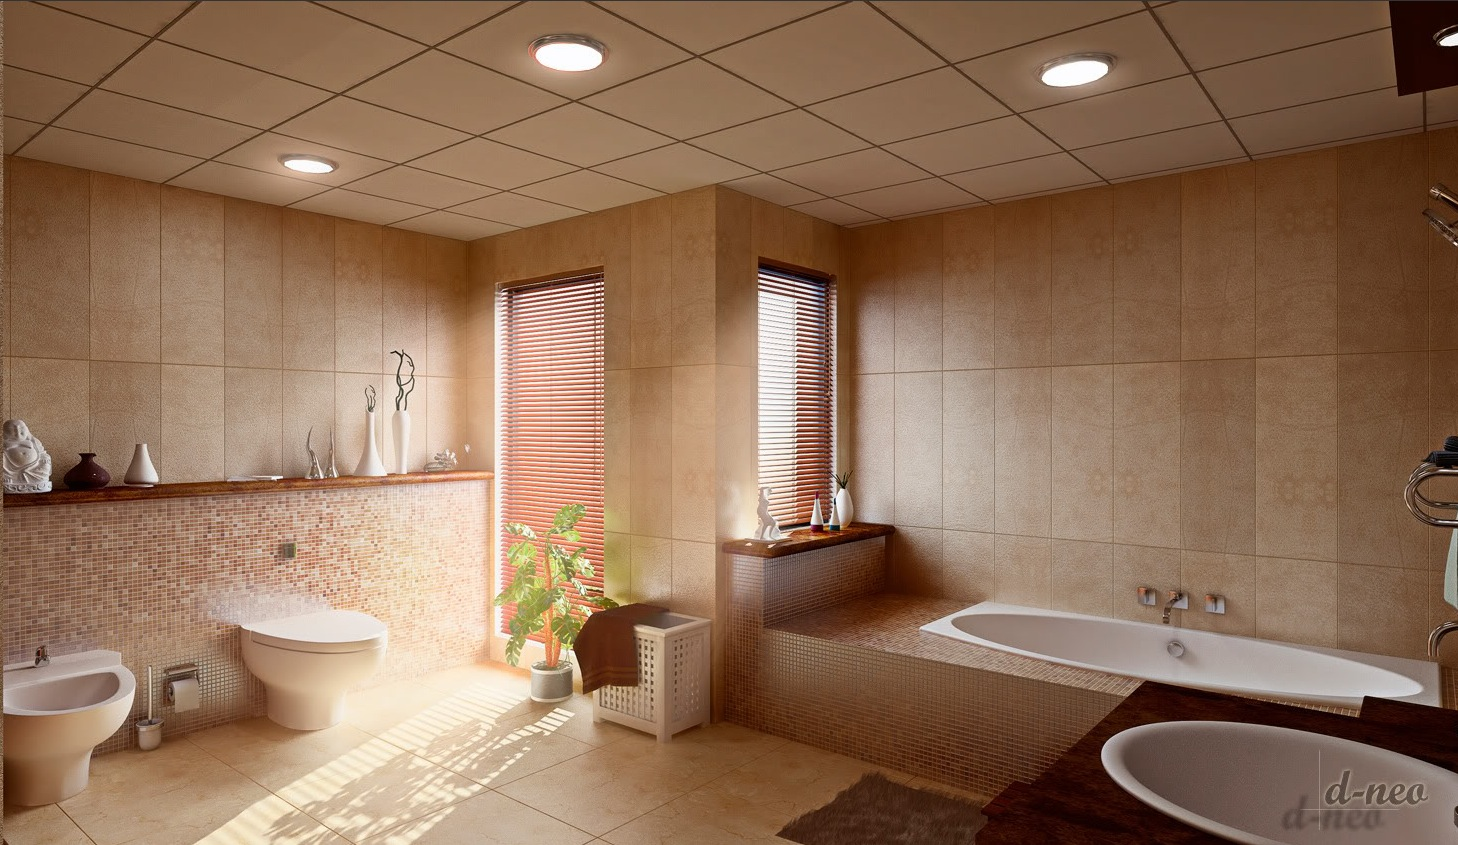 25 great ideas and pictures cool bathroom tile designs ideas for Bathroom ceiling ideas